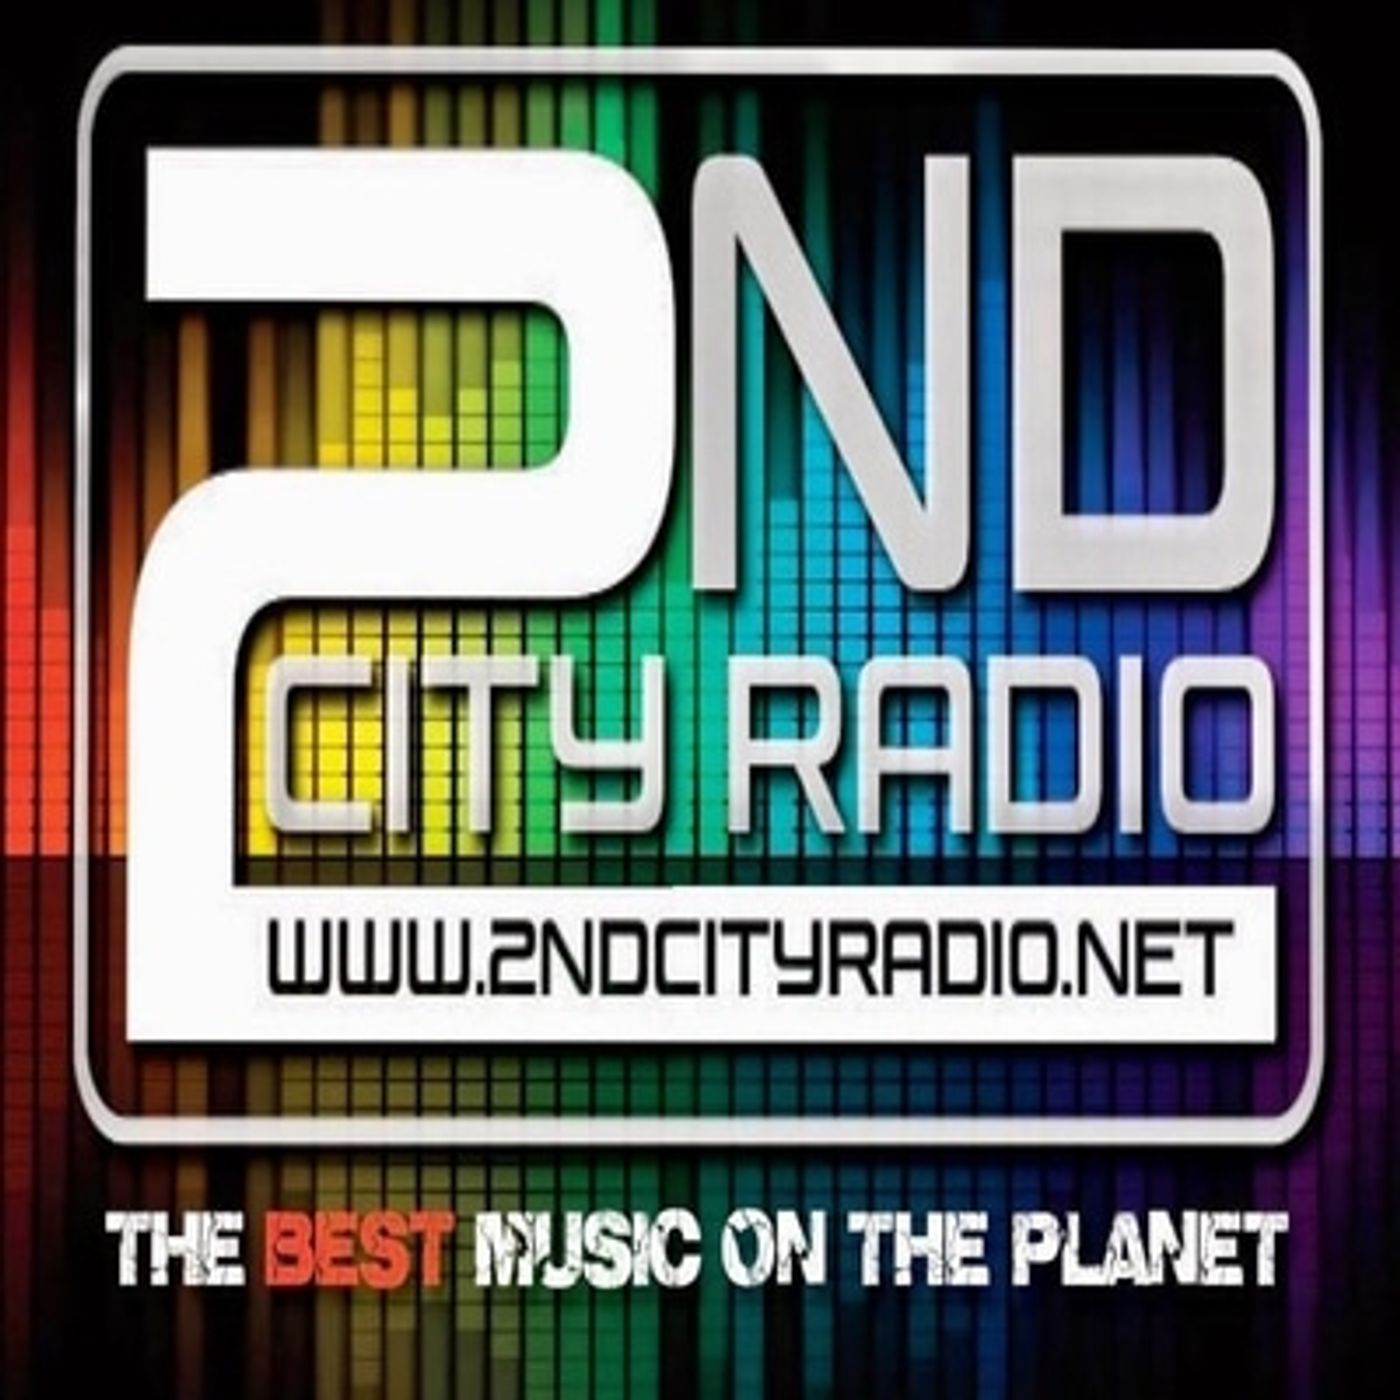 Thursday Night With Tony Durrant on www.2ndcityradio.net